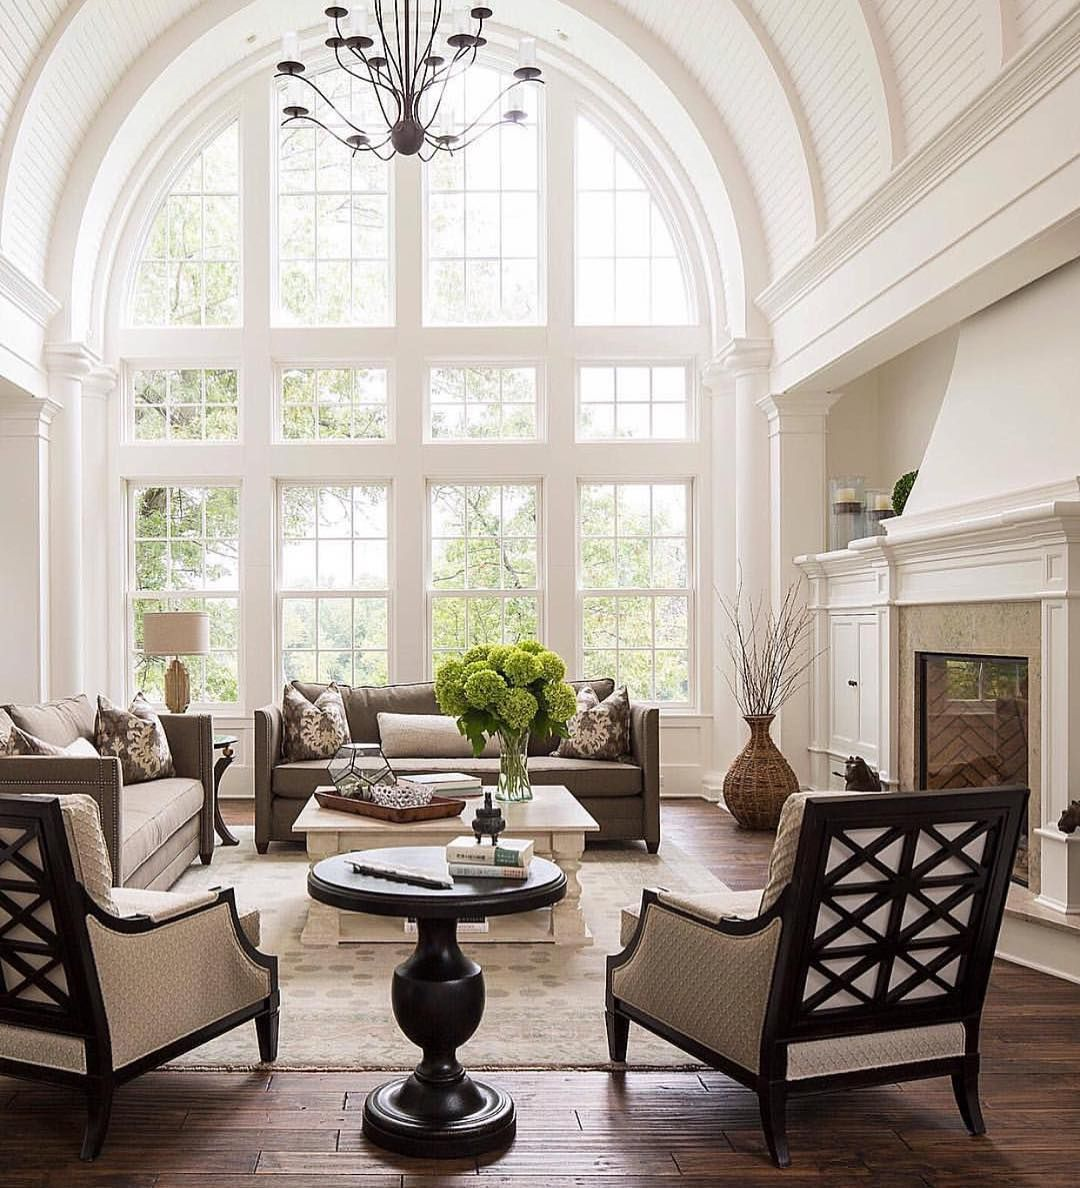 How Amazing Is This By The Sitting Room Interior Design